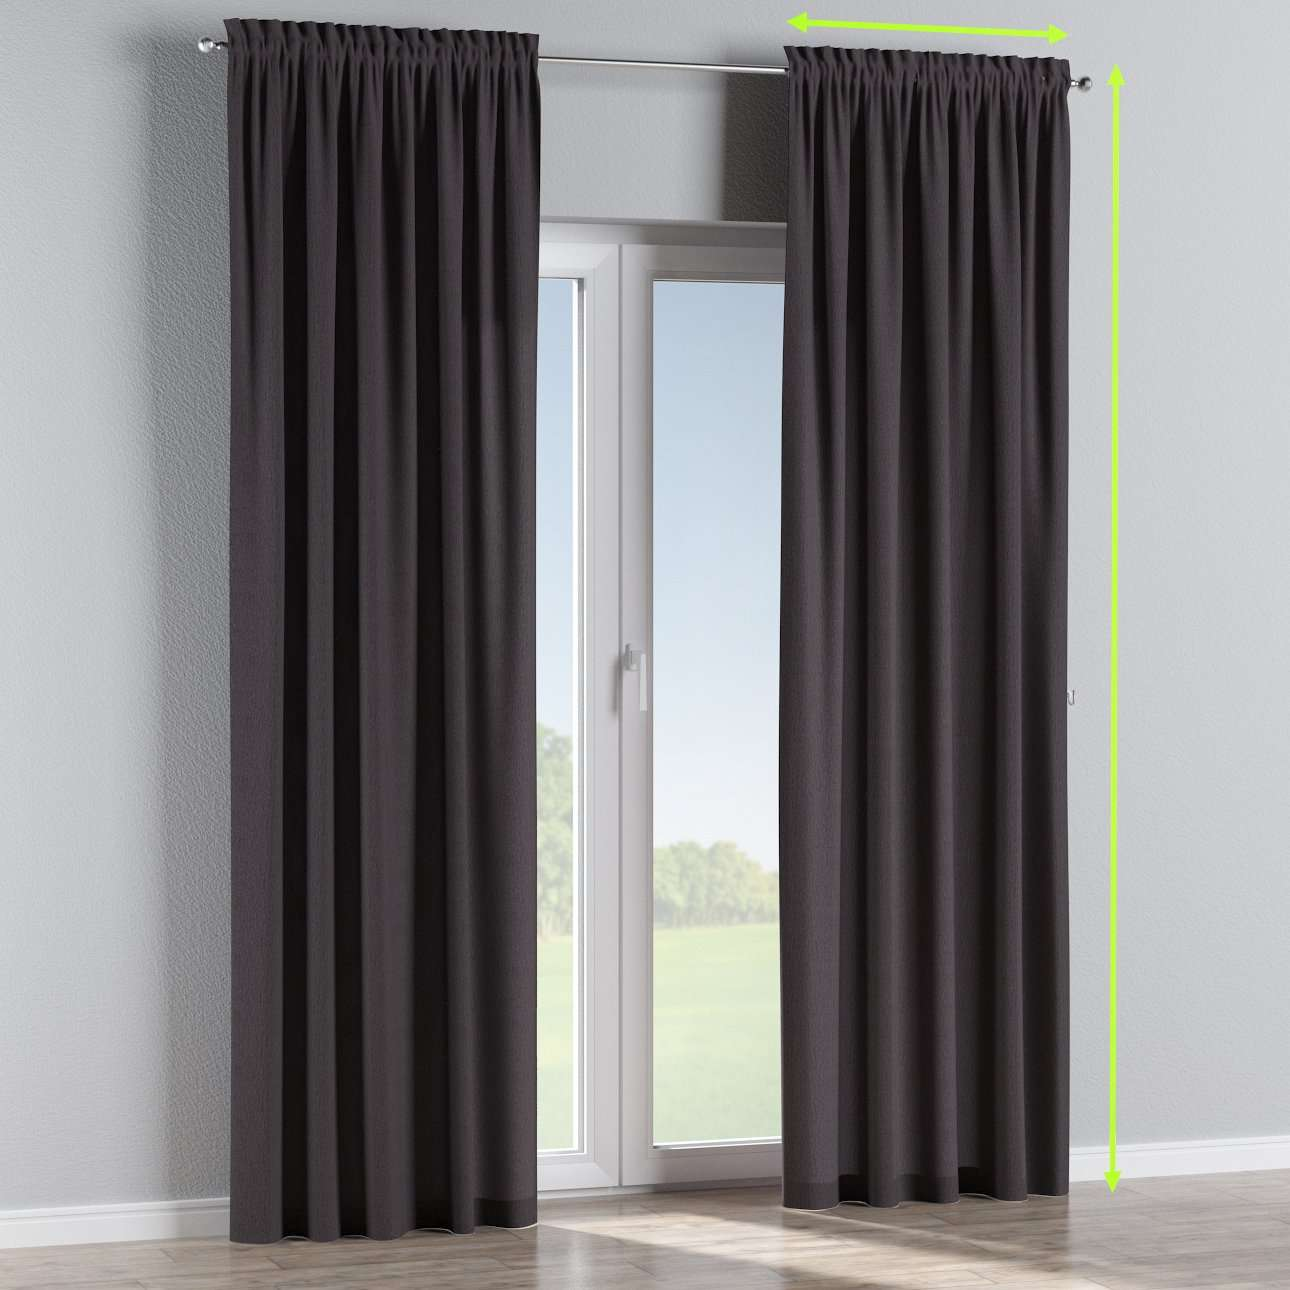 Slot and frill lined curtains in collection Chenille, fabric: 702-20